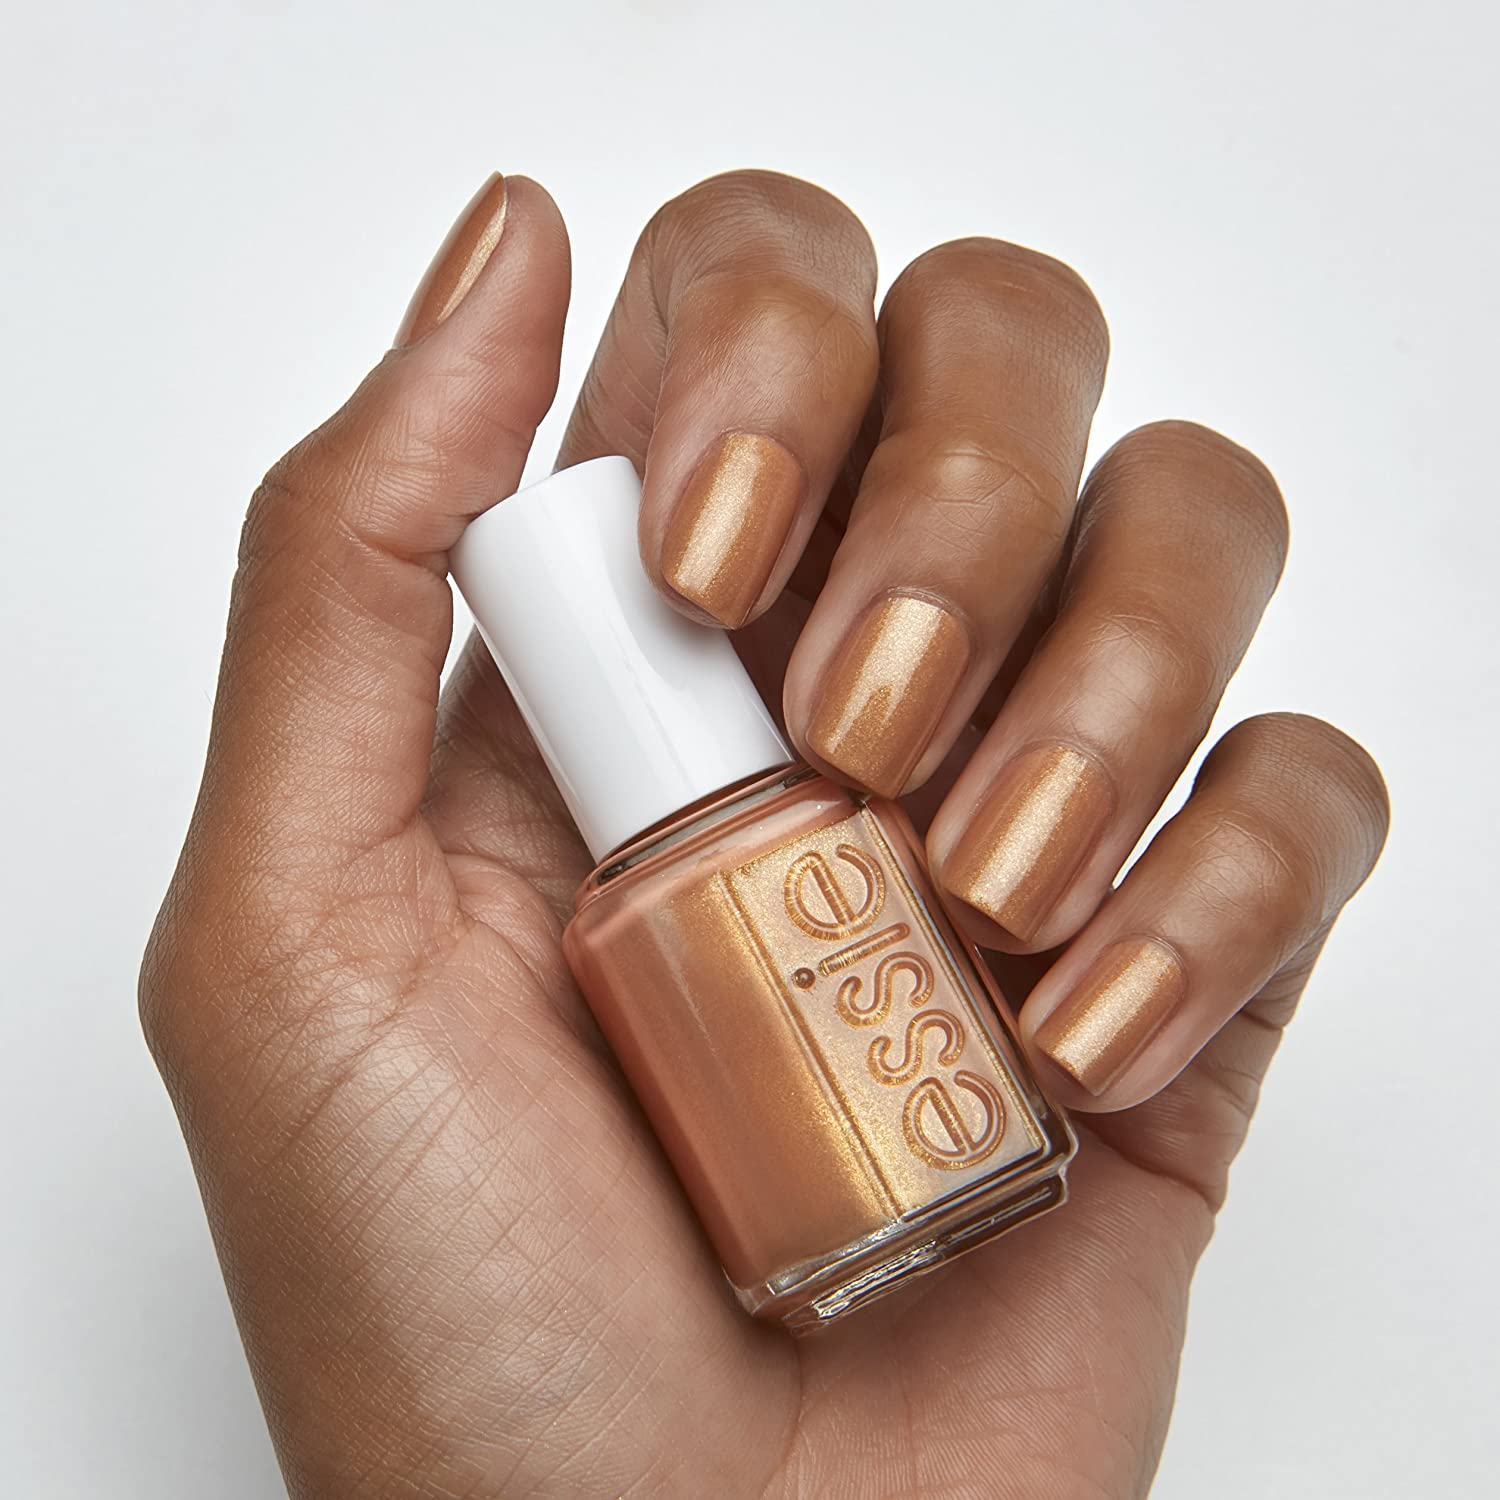 Amazon.com : essie Summer 2018 Nail Polish Collection, Sunny Daze ...